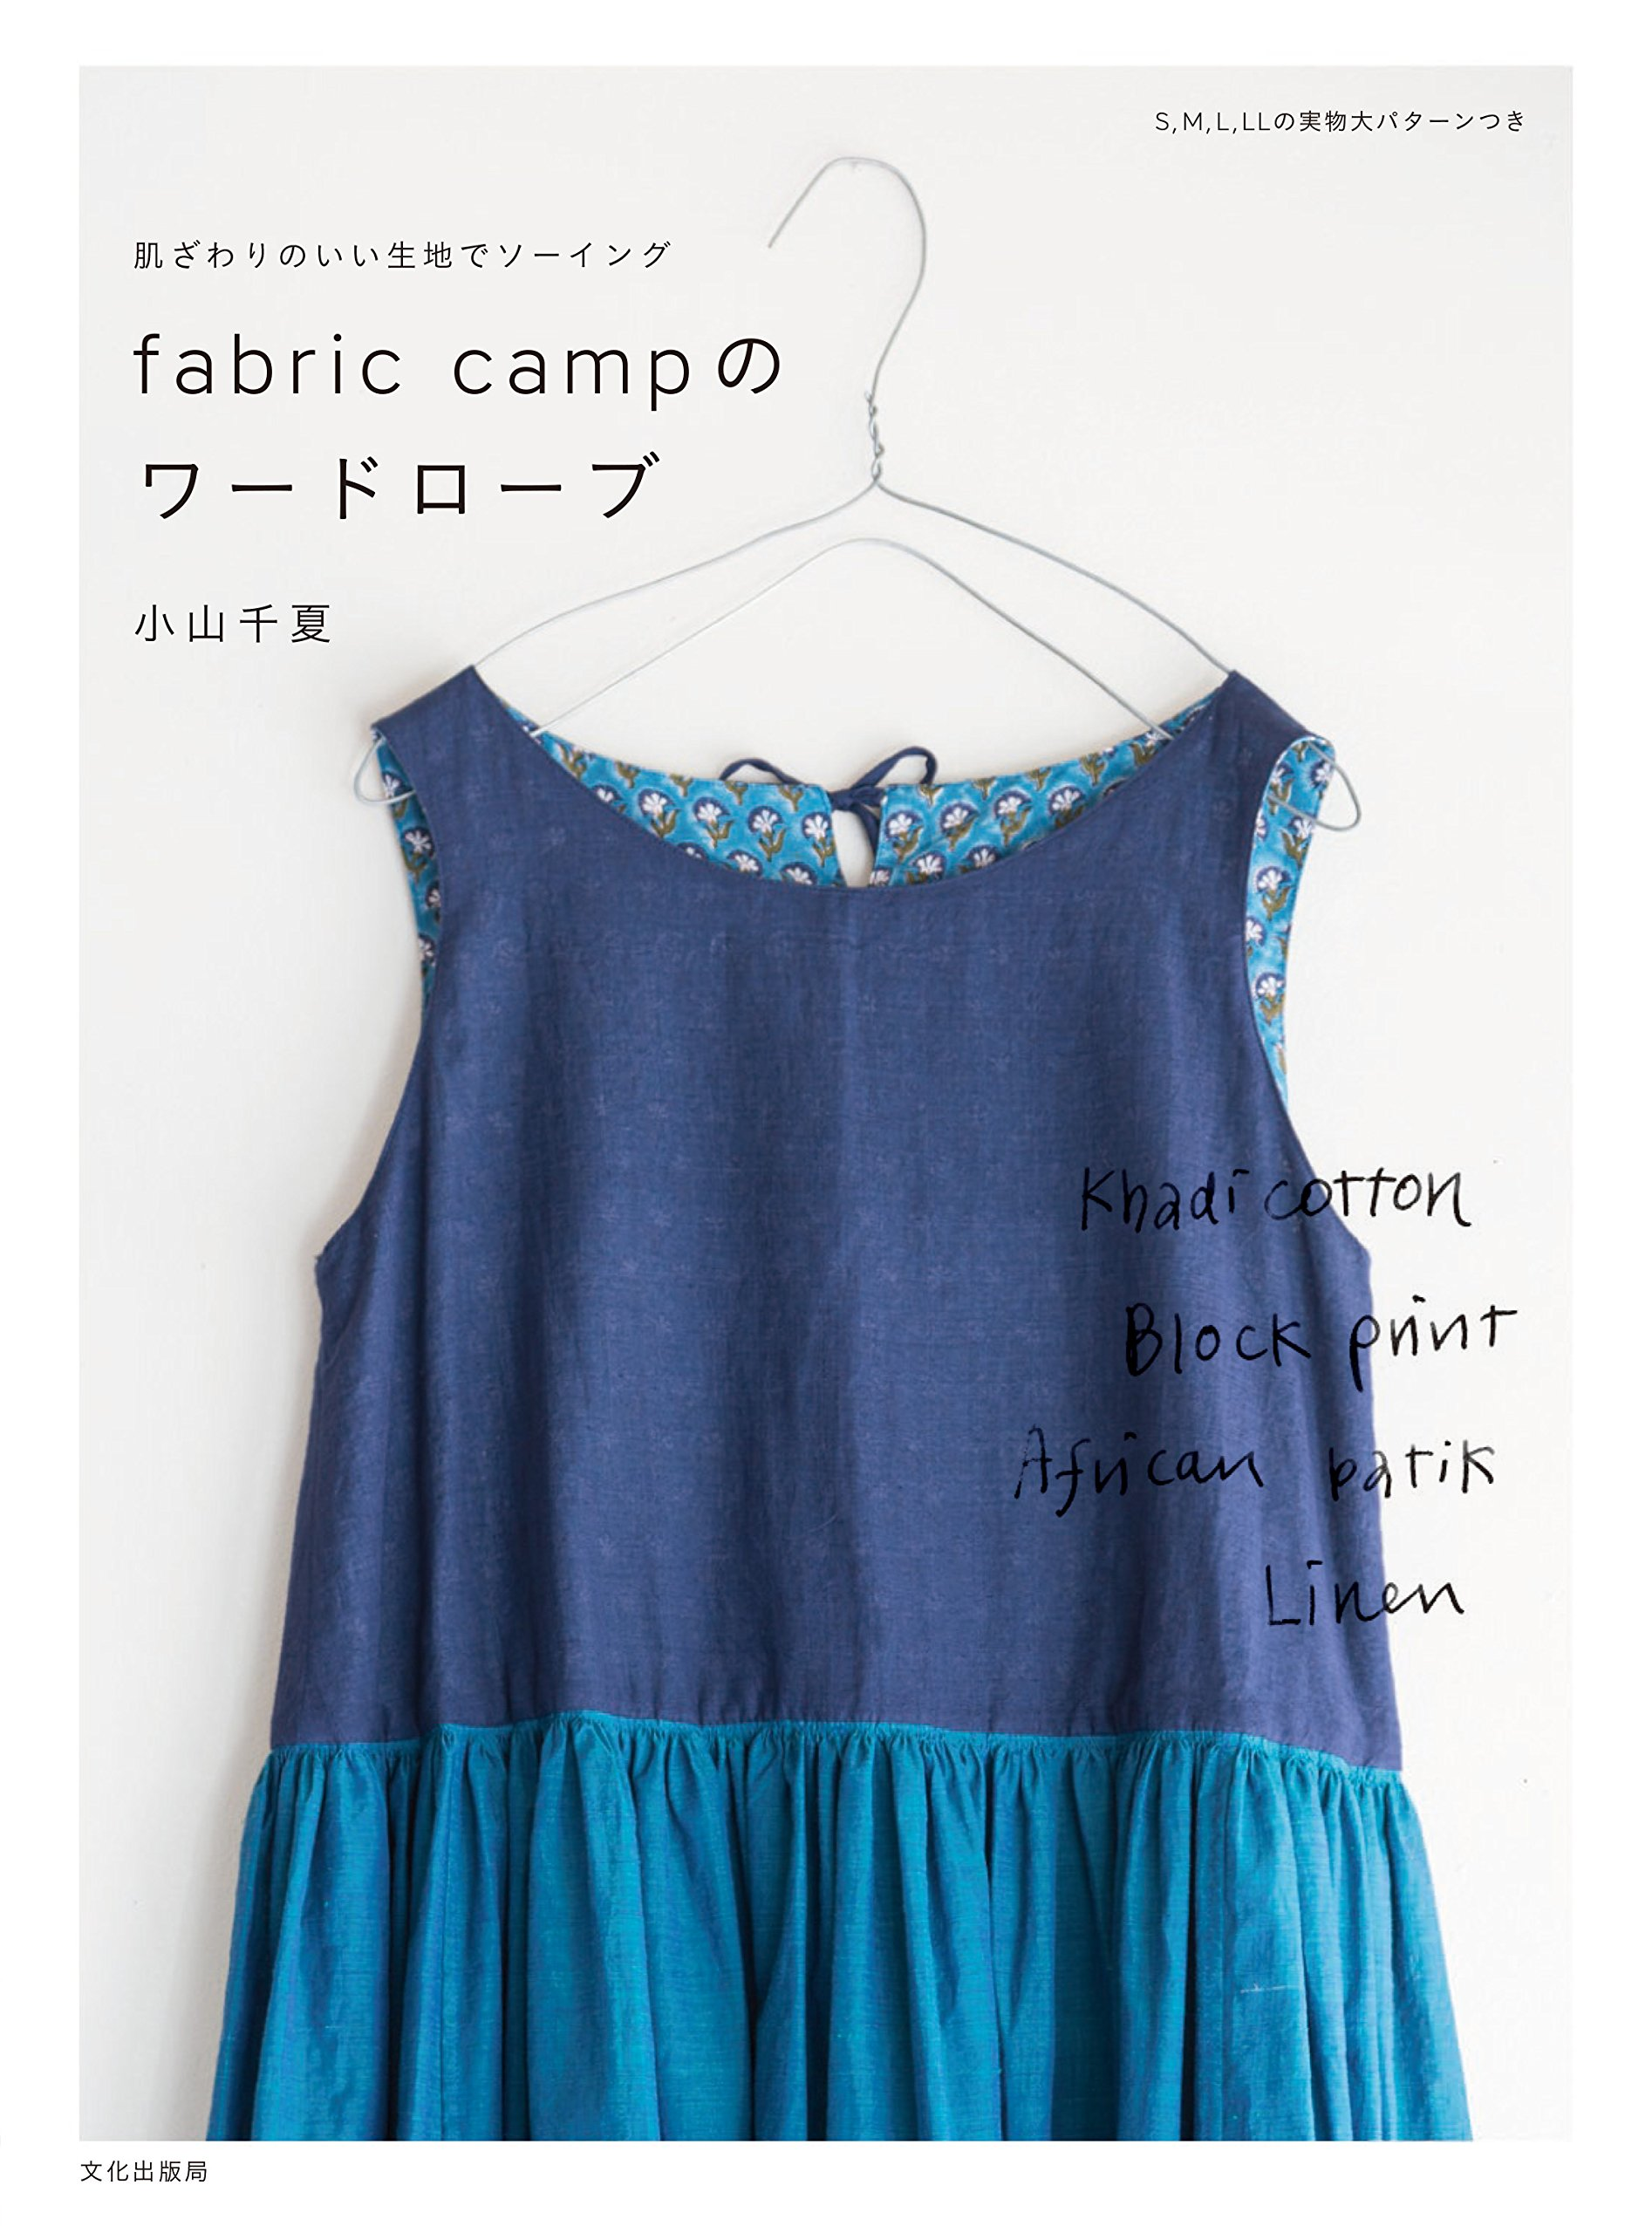 Fabric camp wardrobe